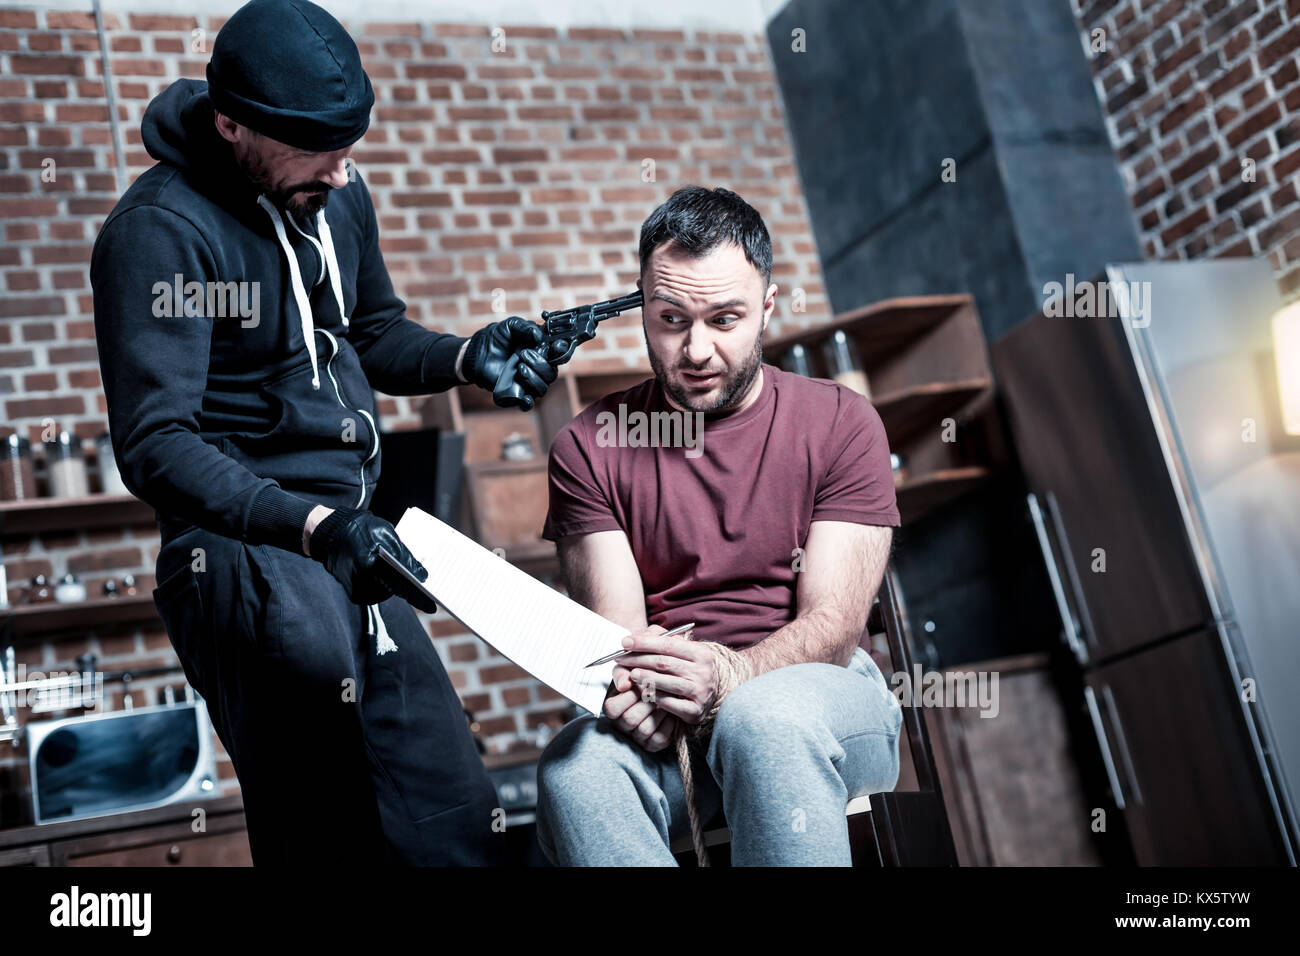 Irritated killer making the man sign a contract - Stock Image